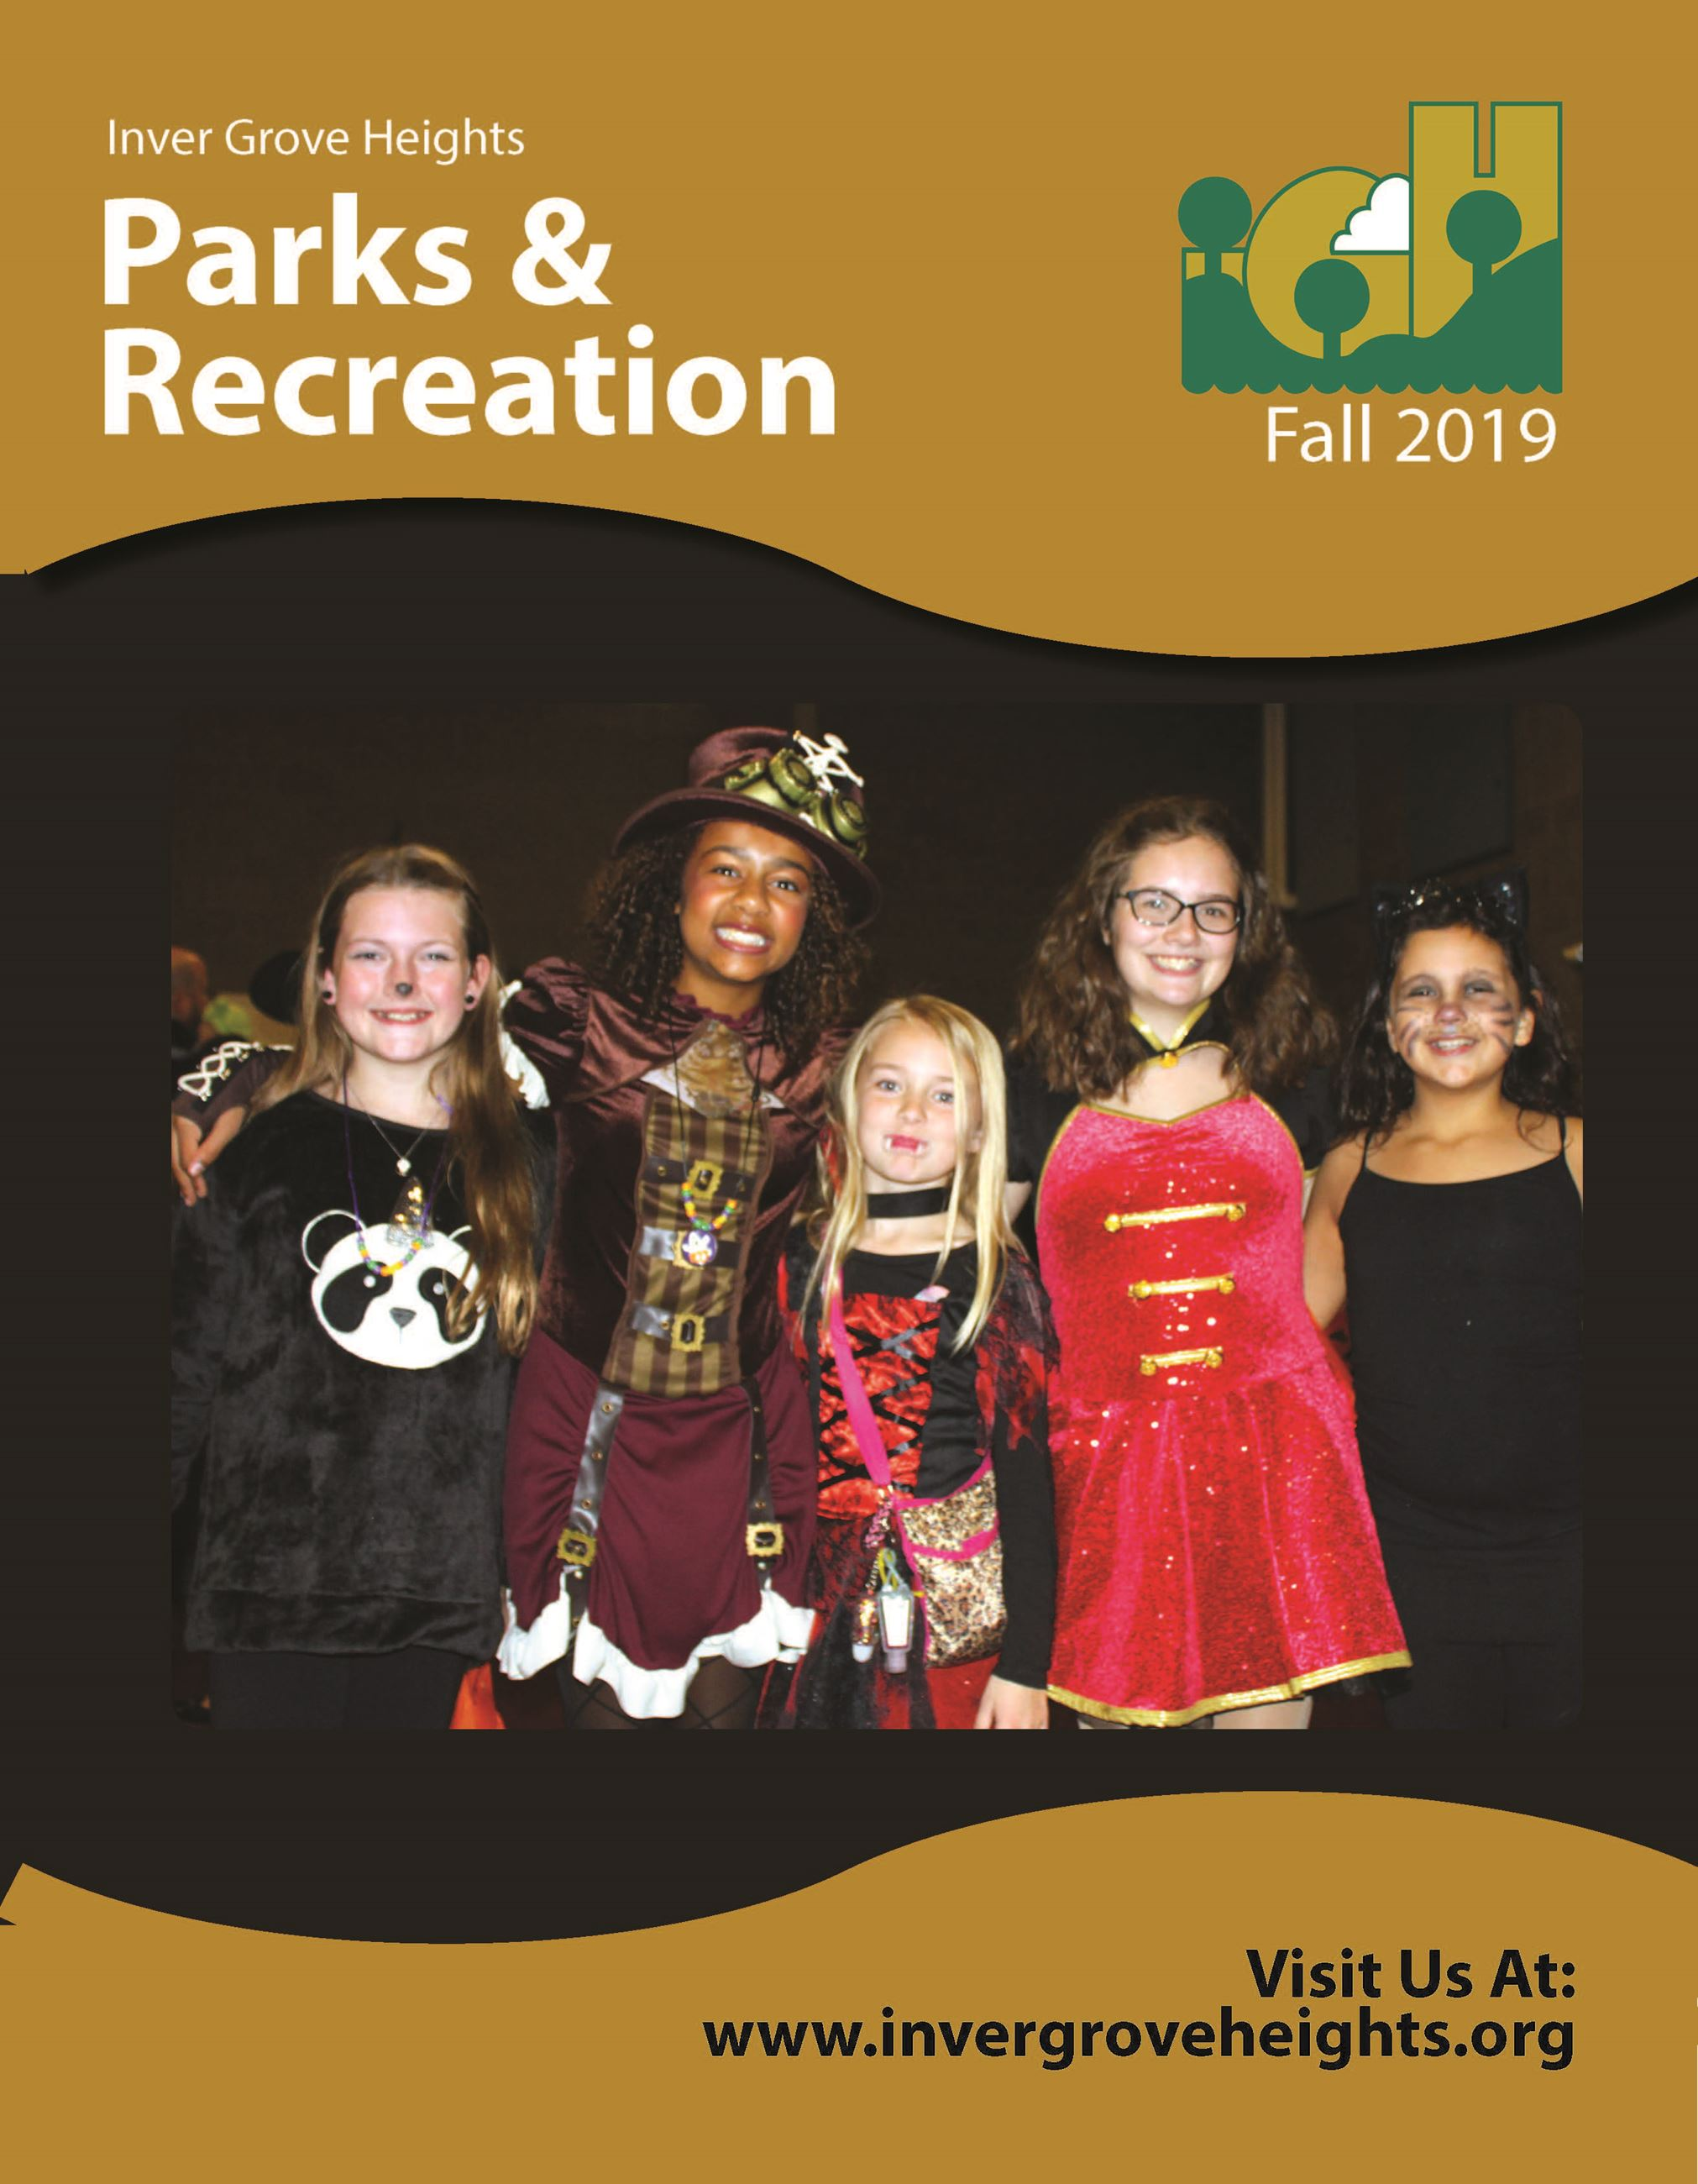 IGH fall 2019 parks and rec brochure front cover